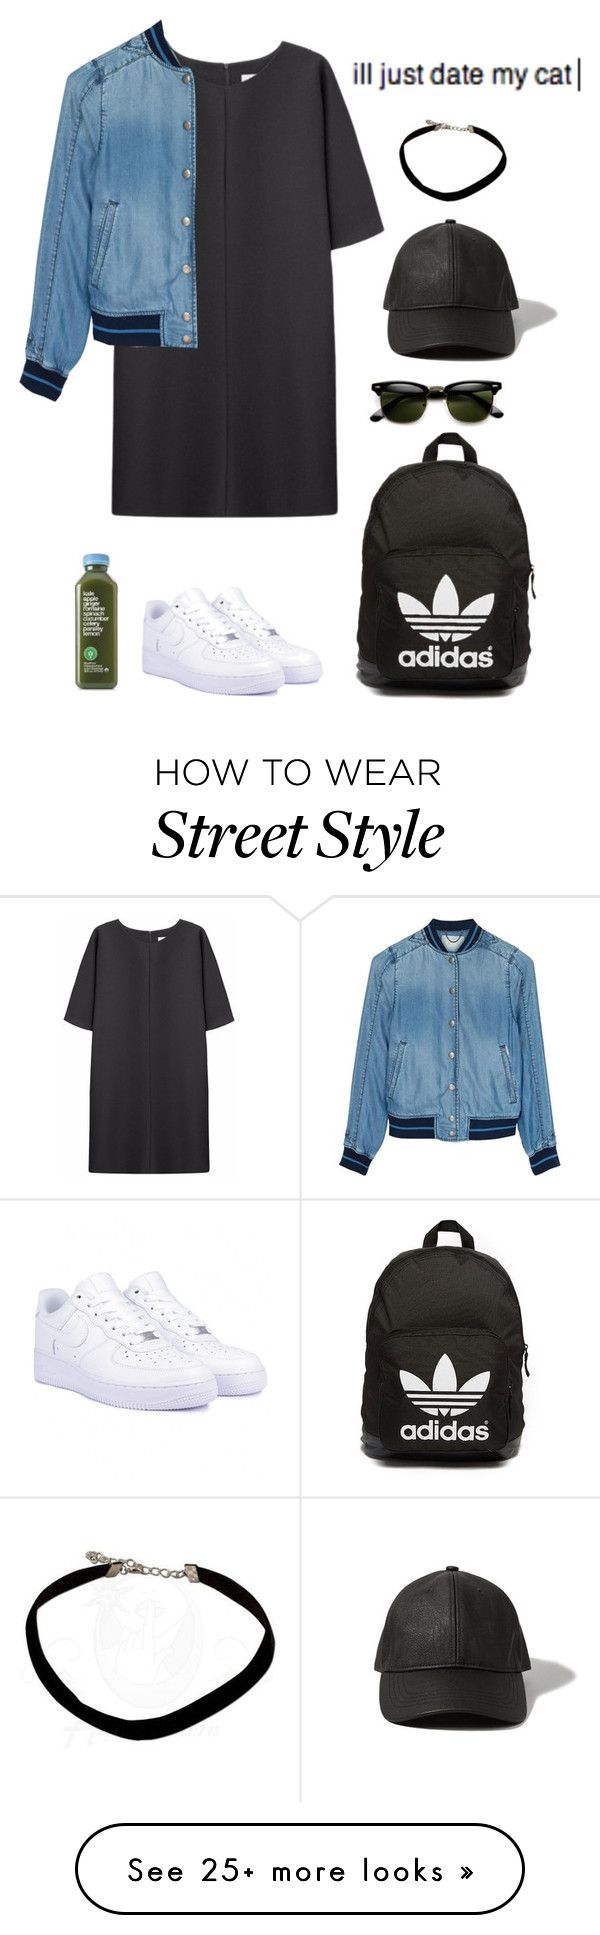 """""""Weekend Style"""" by laurenclaireb on Polyvore featuring moda, Non, Diesel, NIKE, Abercrombie & Fitch y adidas Originals"""